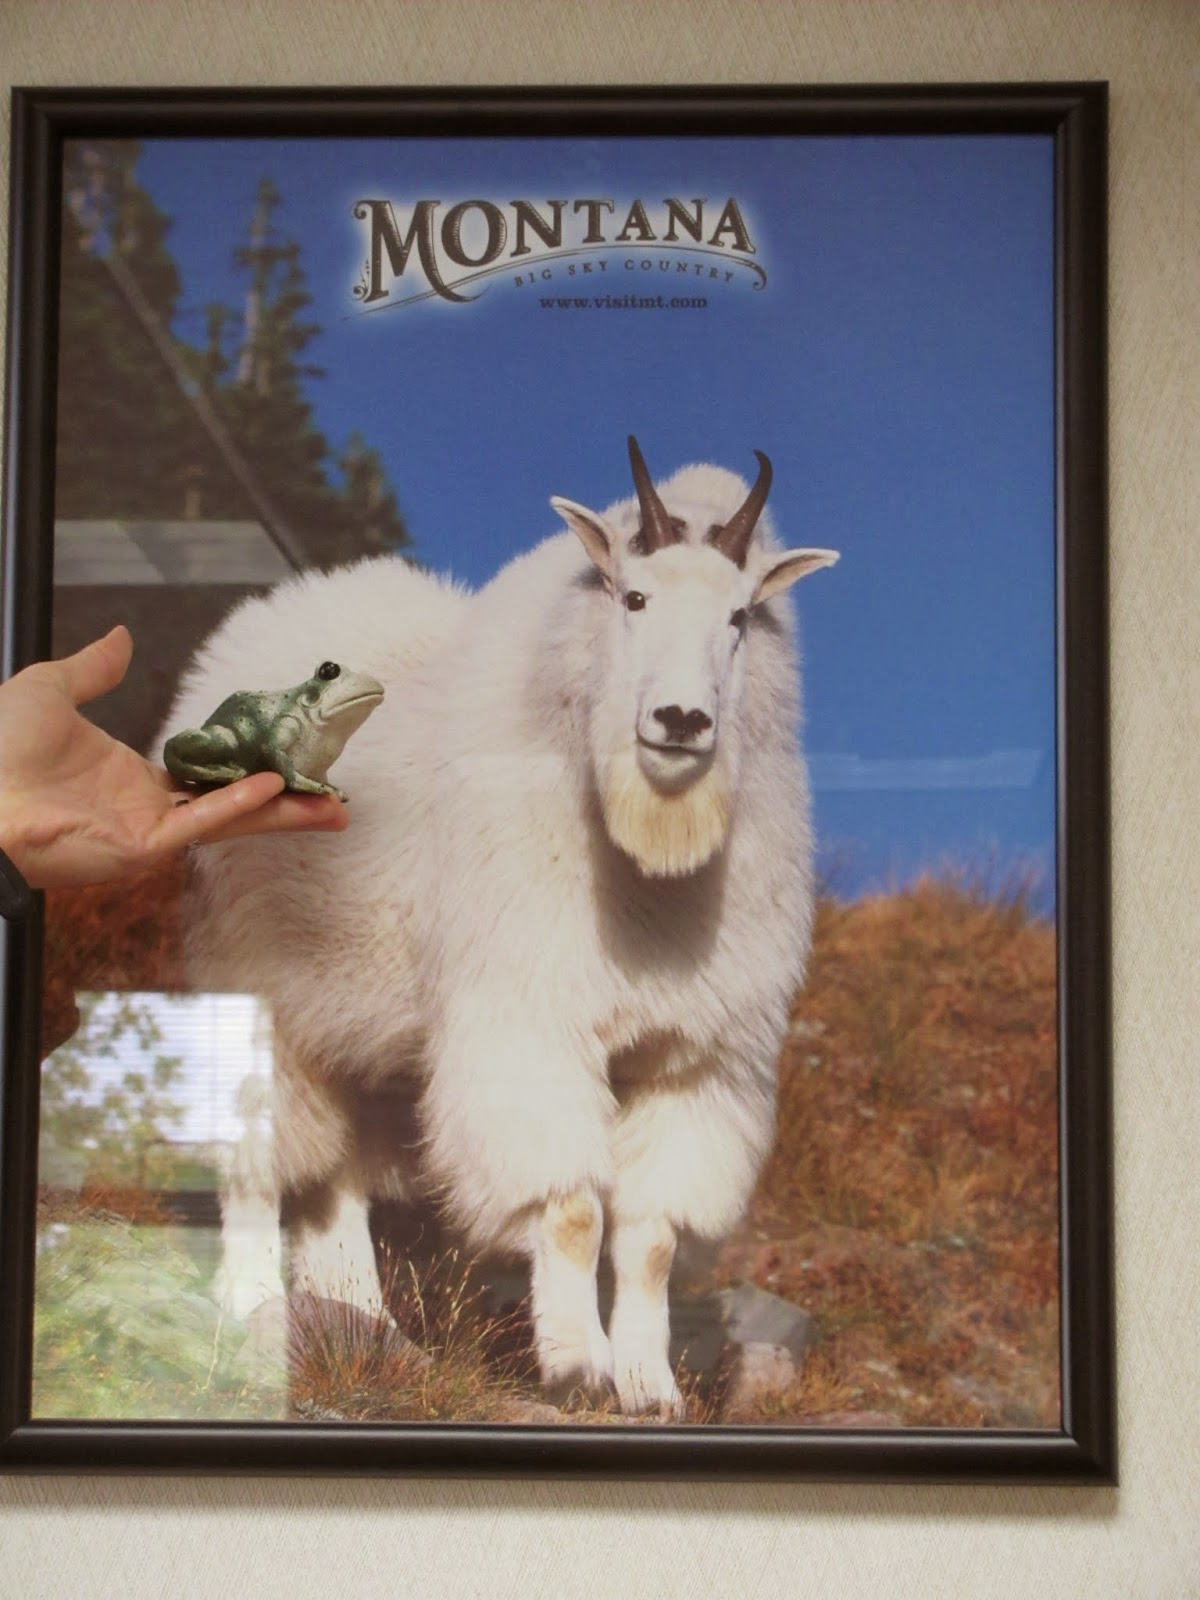 Frog poses with a picture of a mountain goat at a Montana welcome sign